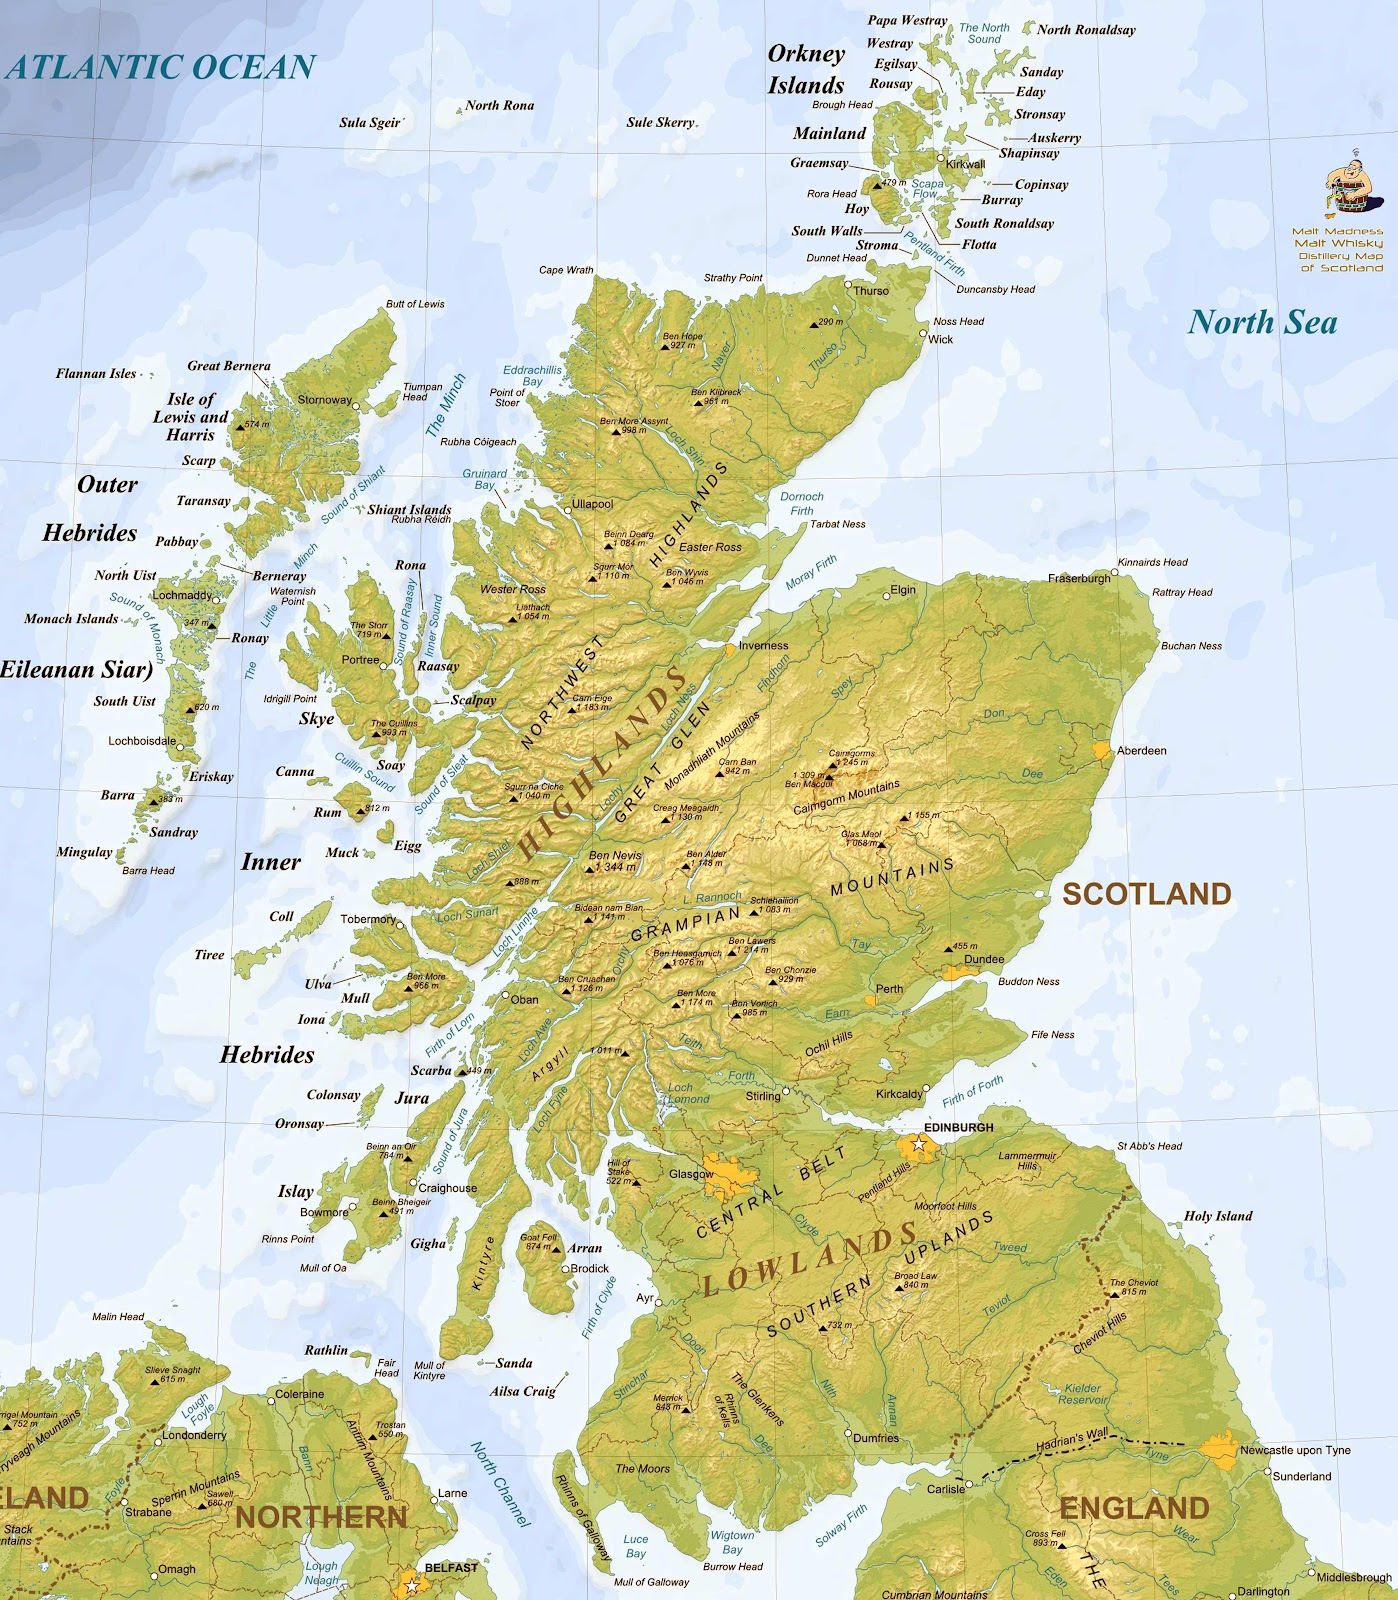 a detailed information about scotland Scotland, being small, is easy to get around in, according to ferne arfin, loch lomond is within an hour's drive for more than 70% of scotland's population find out all about the lake, the argyll forest, the wild glens and the villages of loch lomond and the trossachs national park by clicking the link above.